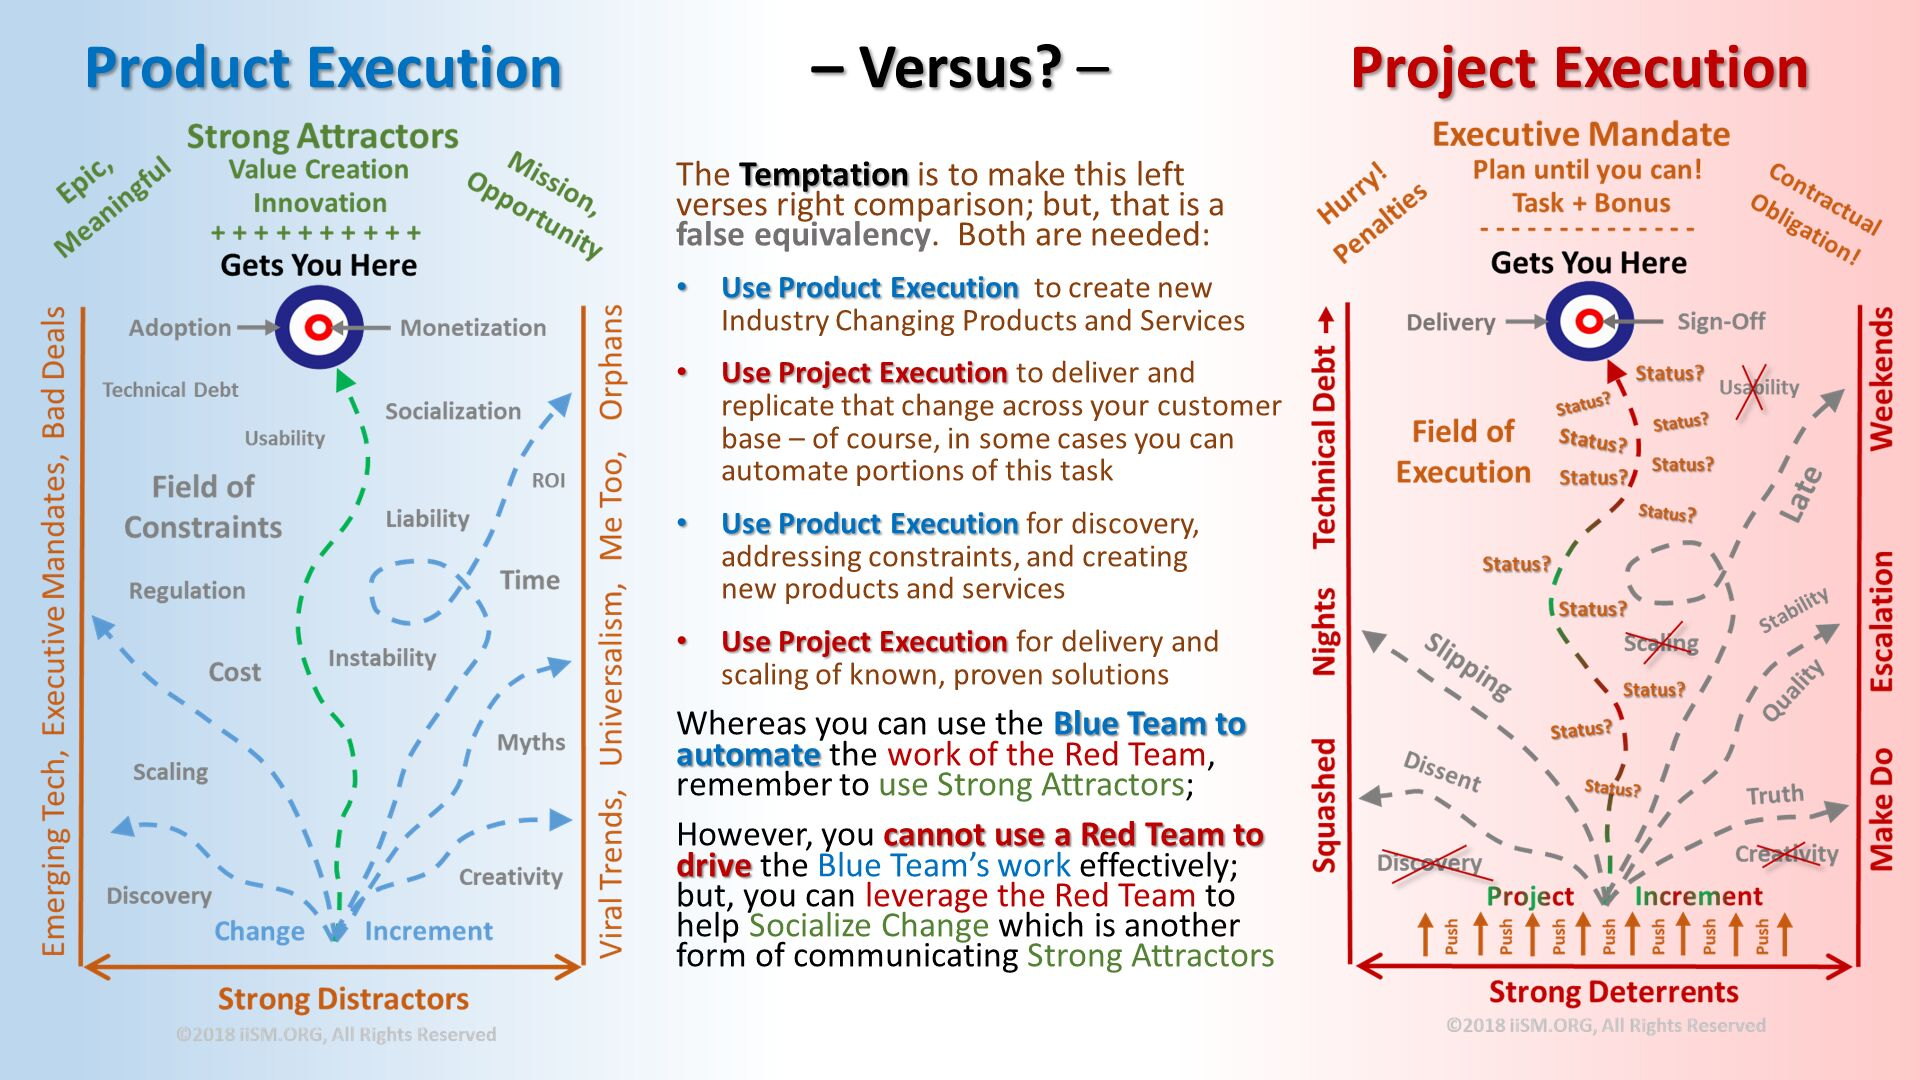 Product Execution                 – Versus? –                 Project Execution. The Temptation is to make this left verses right comparison; but, that is a false equivalency.  Both are needed: Use Product Execution  to create new Industry Changing Products and Services Use Project Execution to deliver and replicate that change across your customer base – of course, in some cases you can automate portions of this task Use Product Execution for discovery, addressing constraints, and creating new products and services Use Project Execution for delivery and scaling of known, proven solutions Whereas you can use the Blue Team to automate the work of the Red Team, remember to use Strong Attractors; However, you cannot use a Red Team to drive the Blue Team's work effectively; but, you can leverage the Red Team to help Socialize Change which is another form of communicating Strong Attractors.